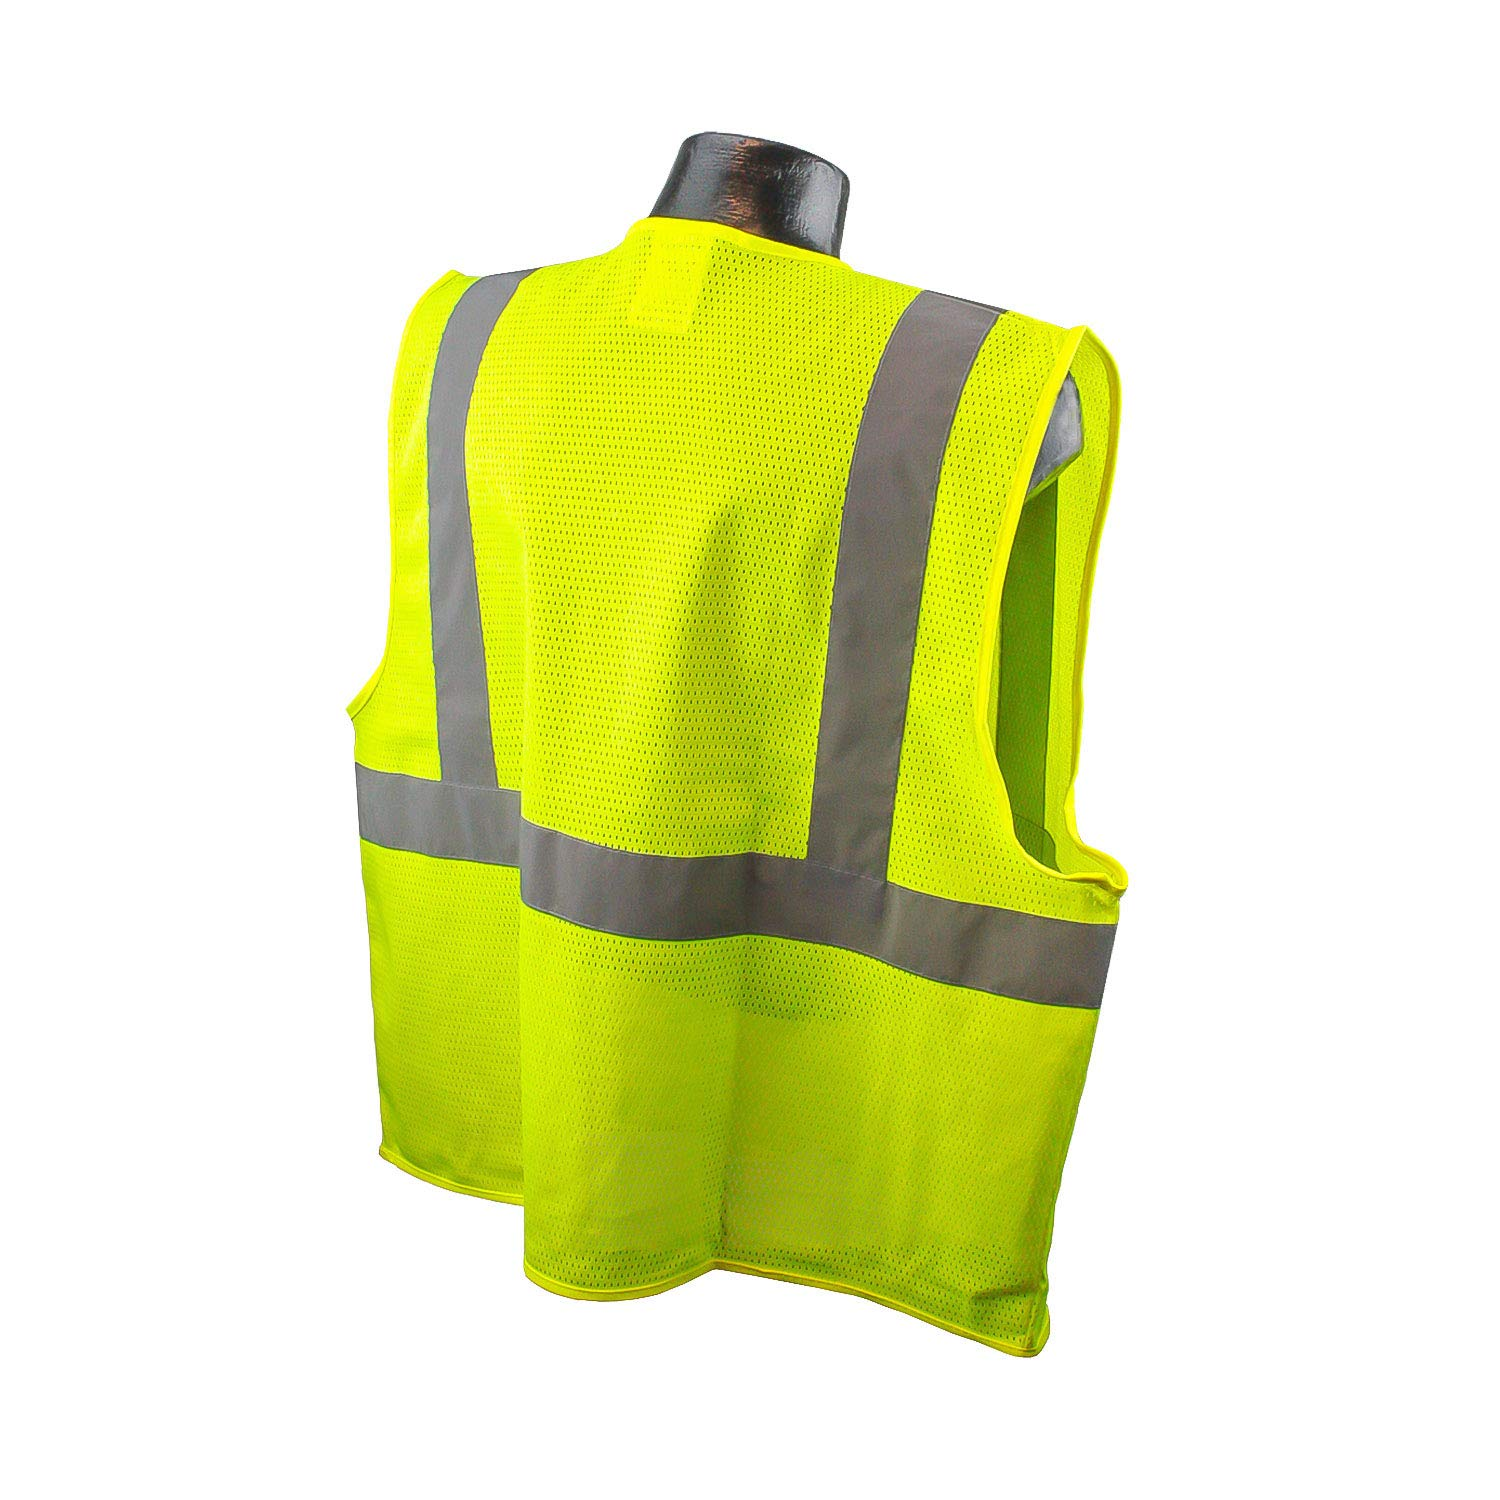 Radians SV2GM5X Class 2 Safety Vest Mesh, Green, 5 Extra Large